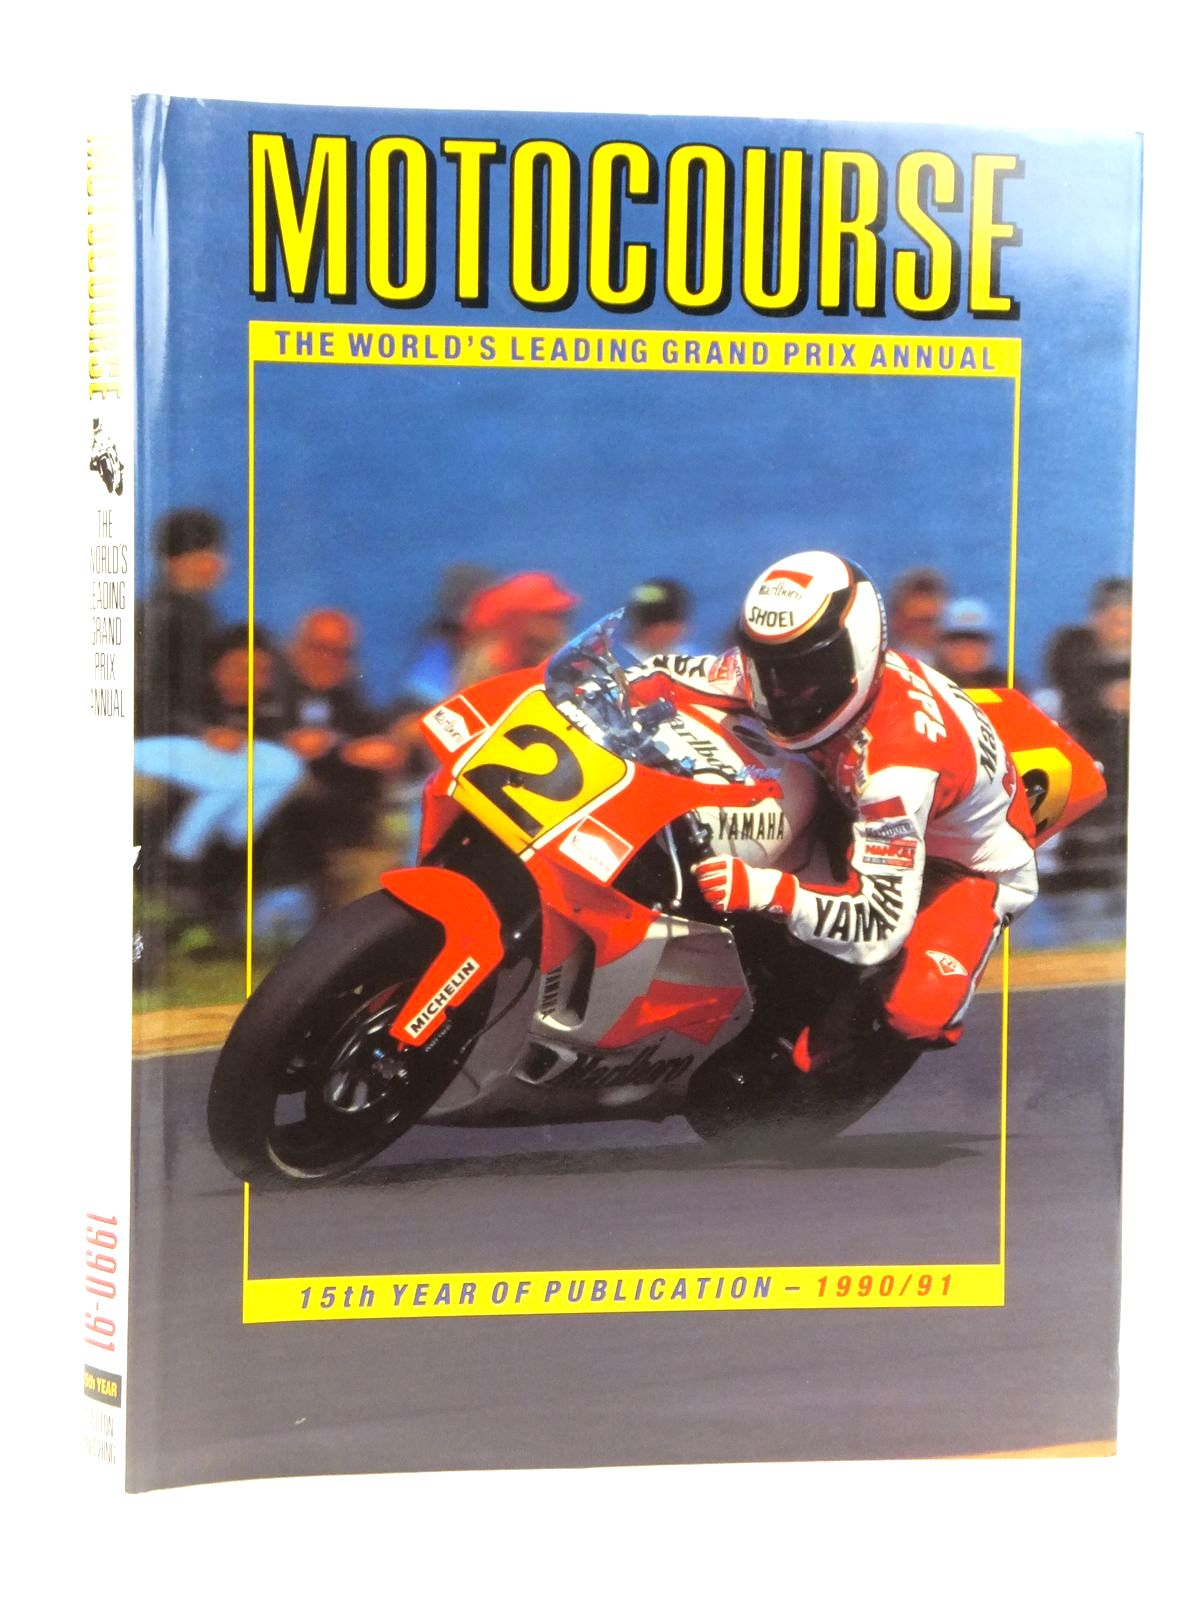 Photo of MOTOCOURSE 1990/91